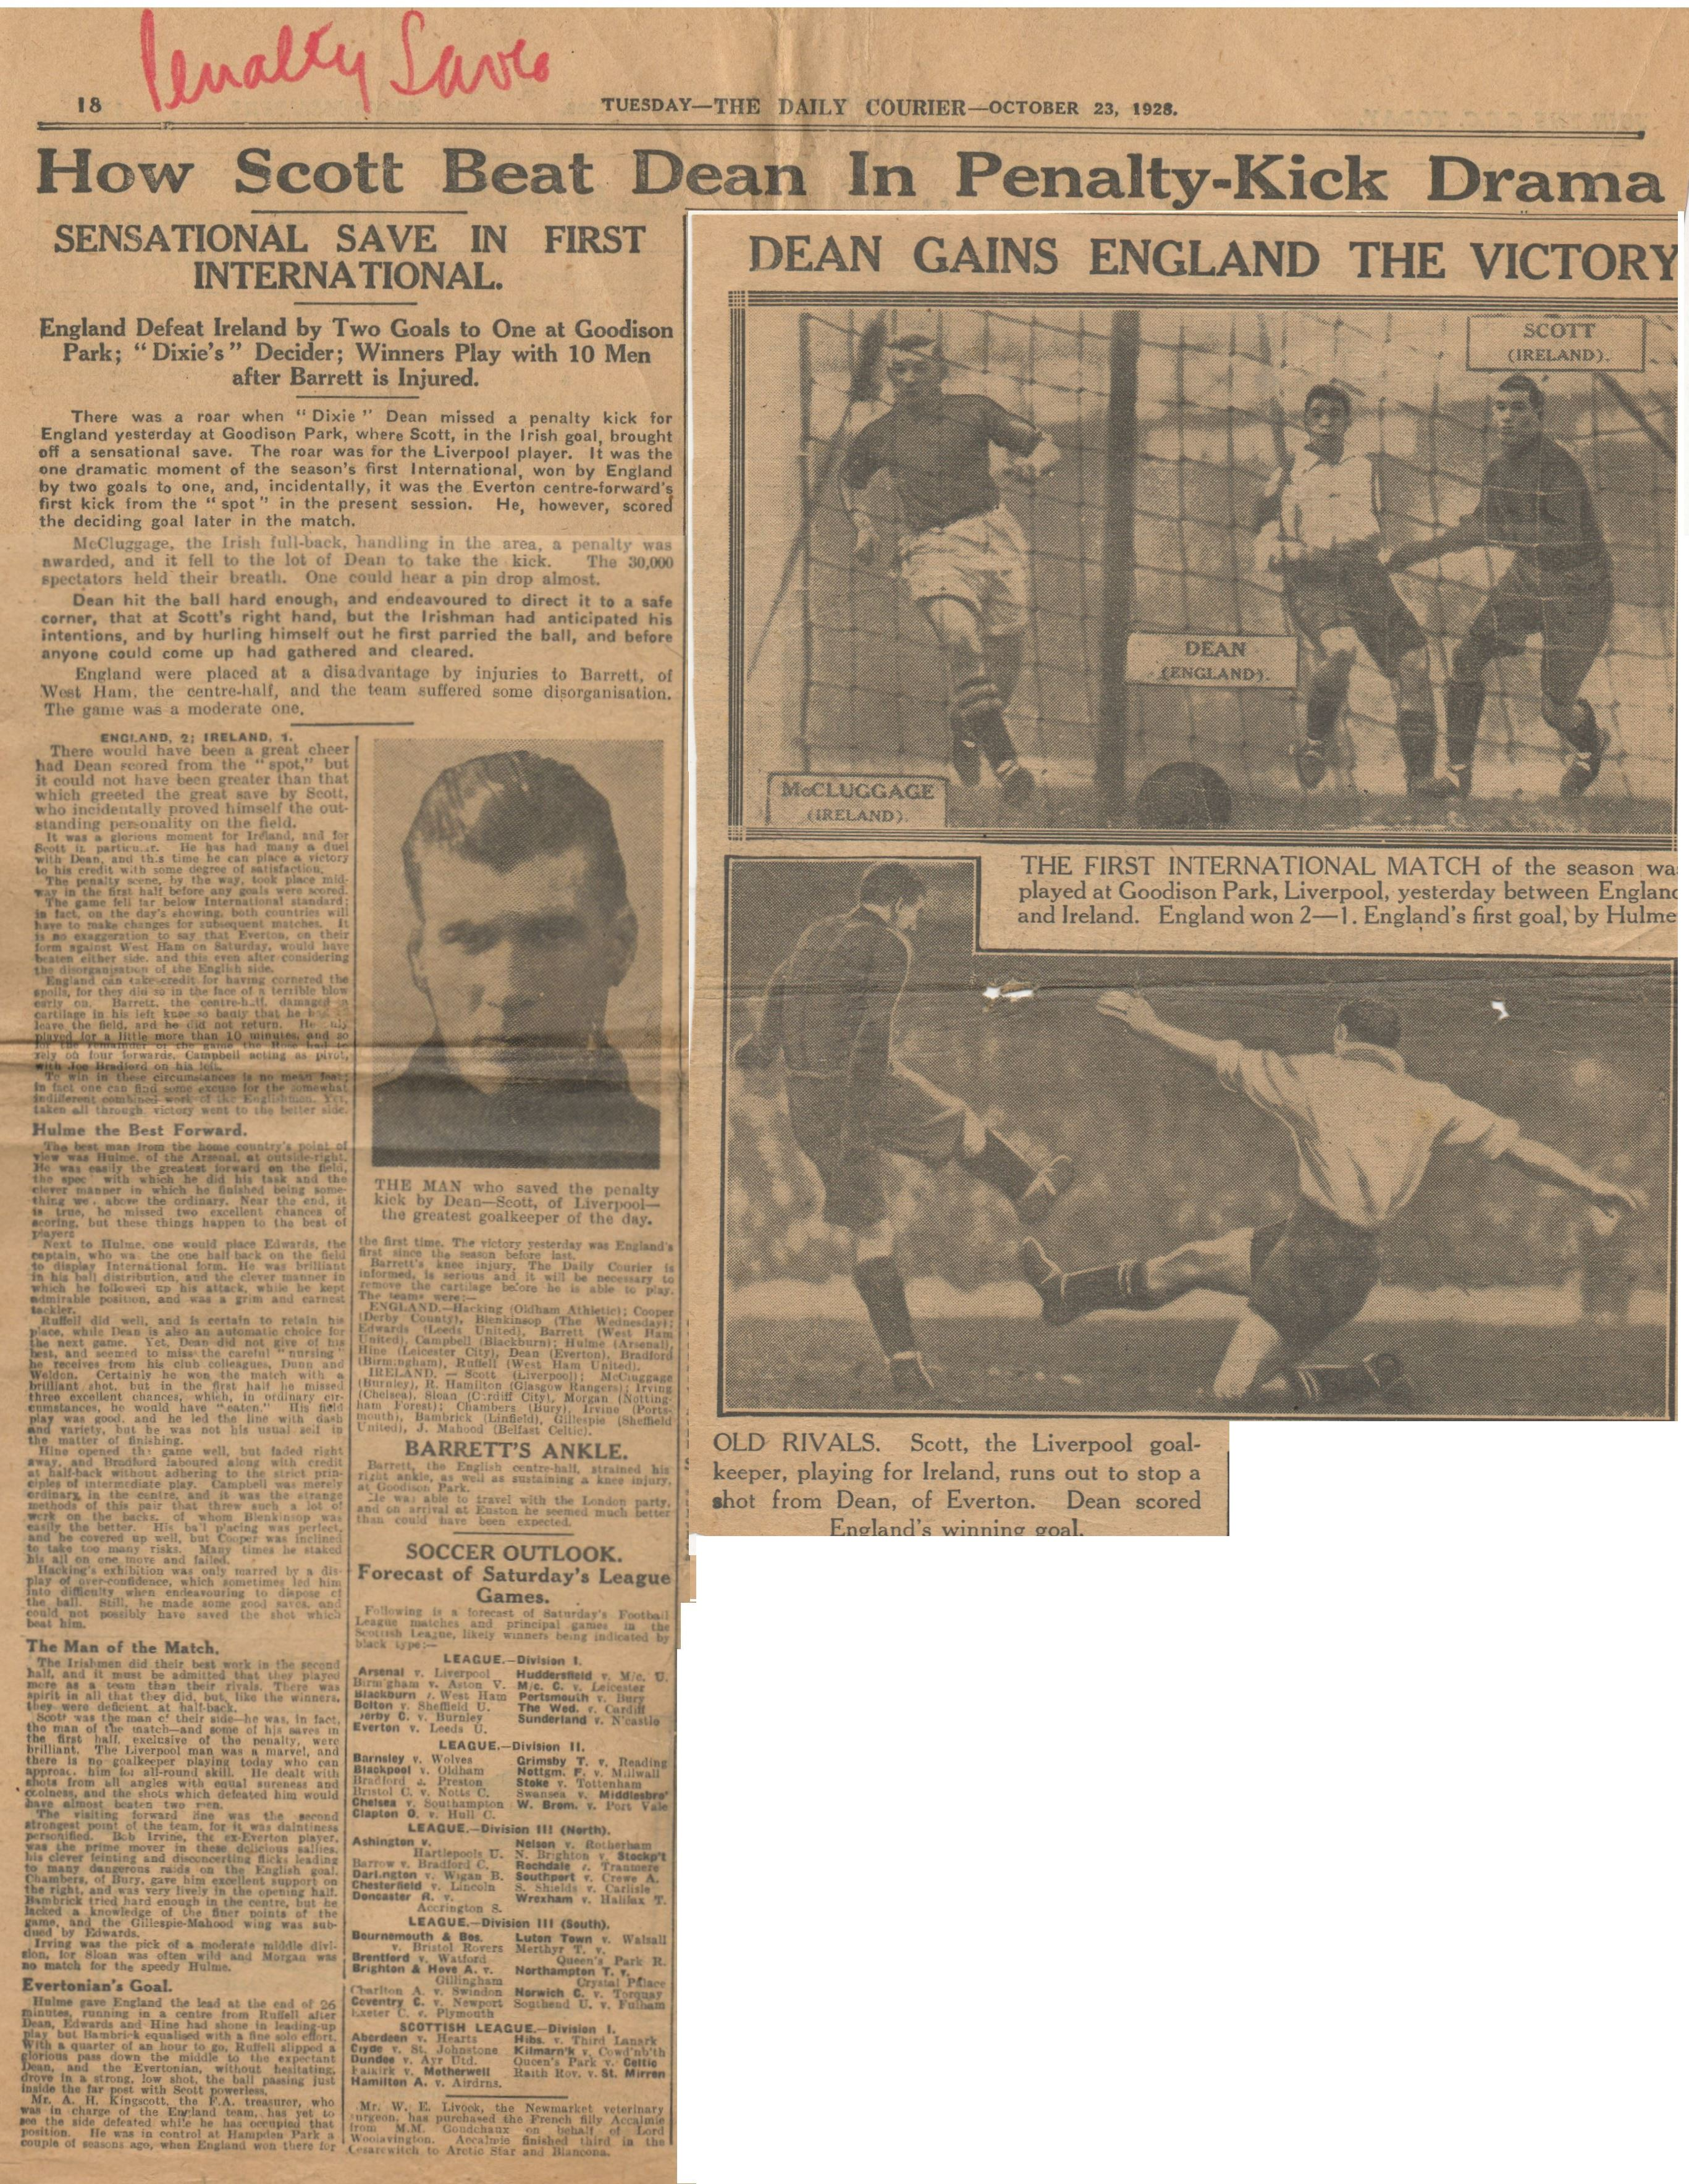 How Scott beat Dean in penalty-kick drama - 23 October 1928